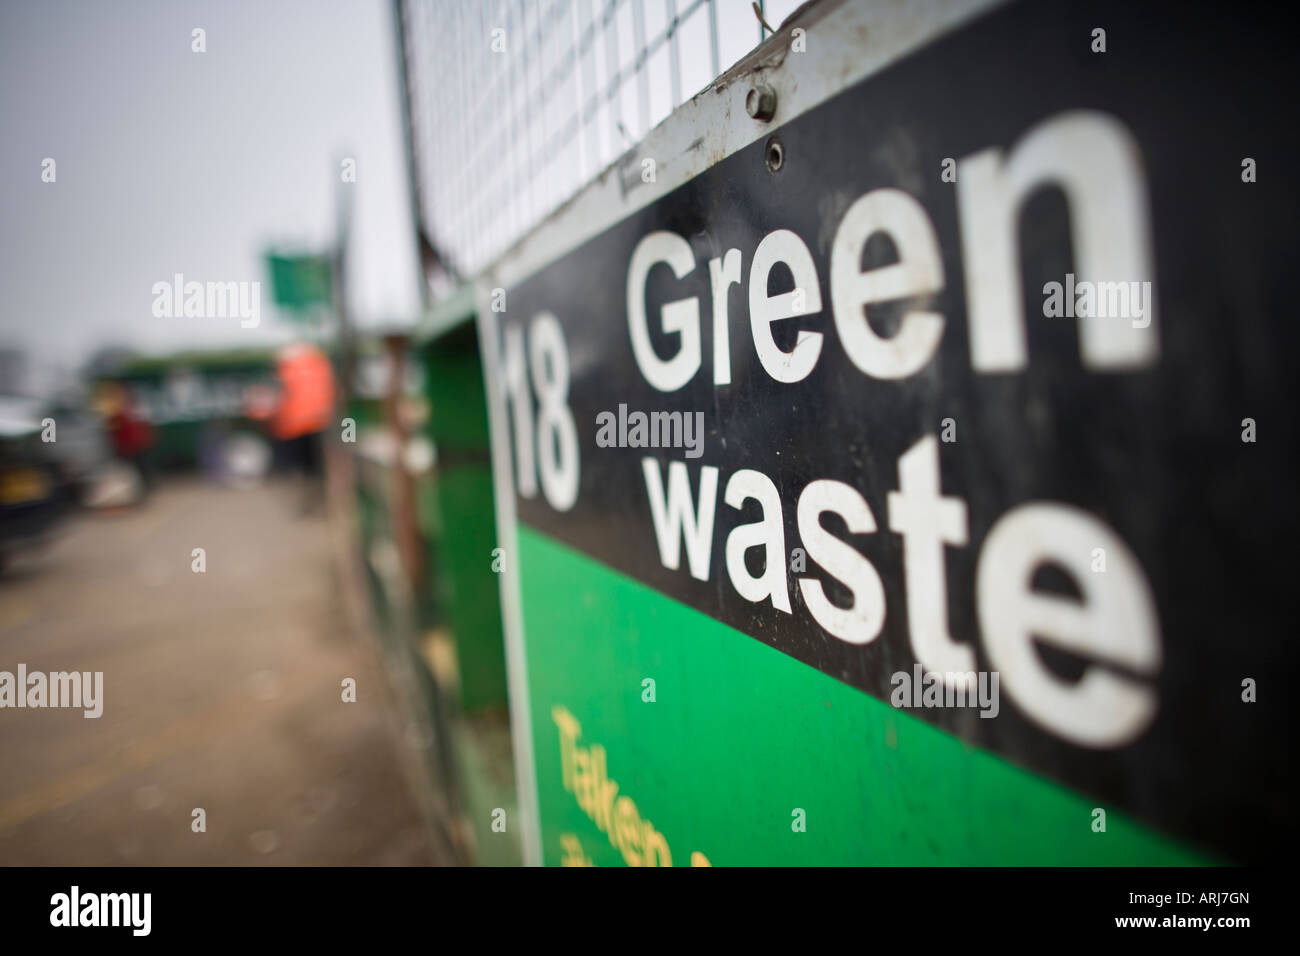 Green waste container at a recycling centre, UK - Stock Image